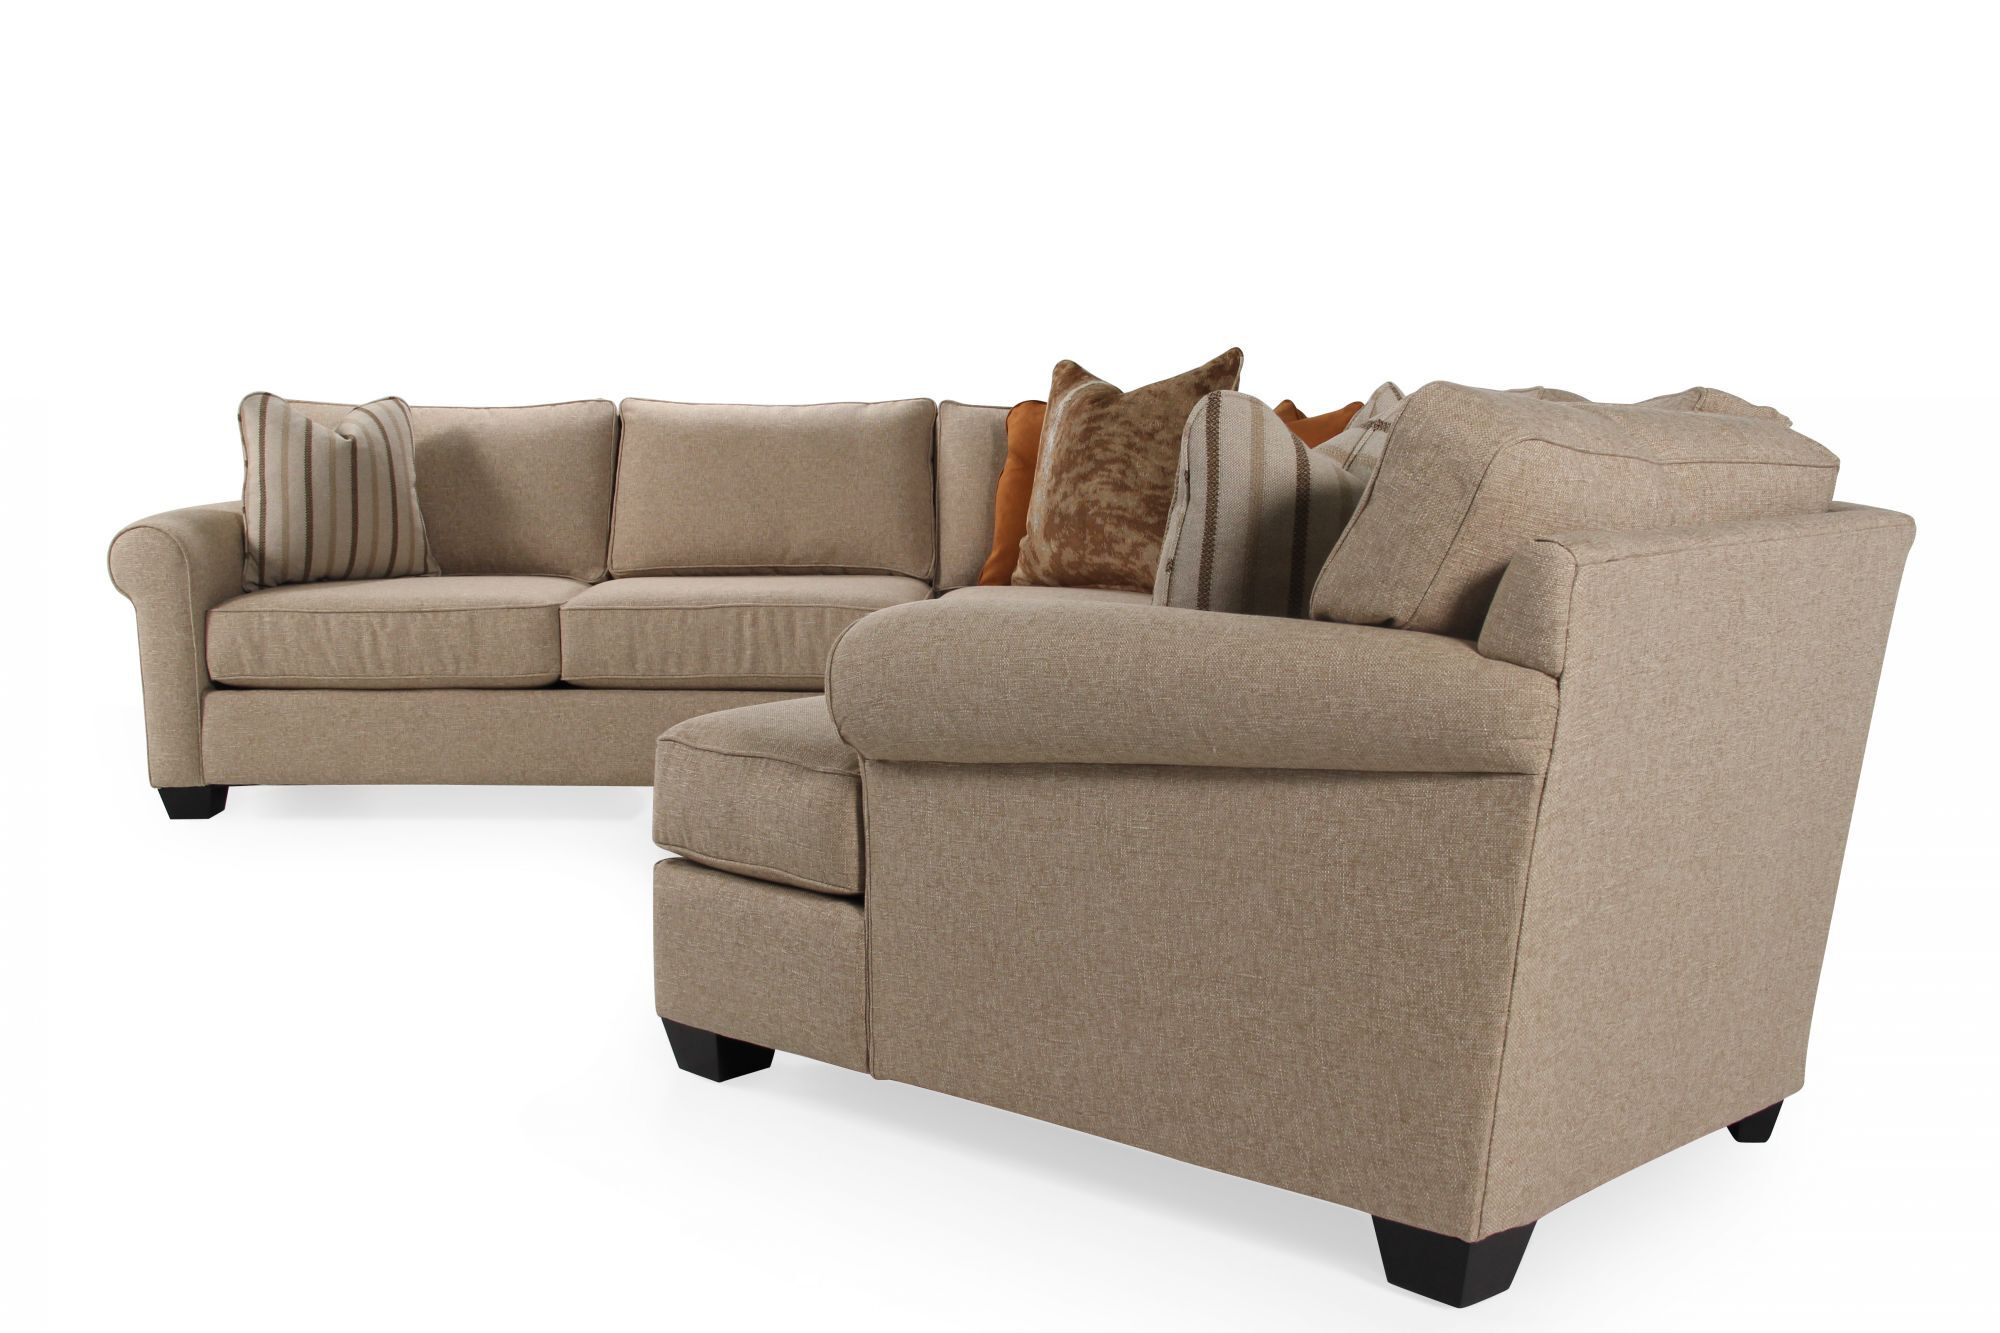 jonathan louis benjamin sectional sofa repair cost in bangalore four piece contemporary sand mathis